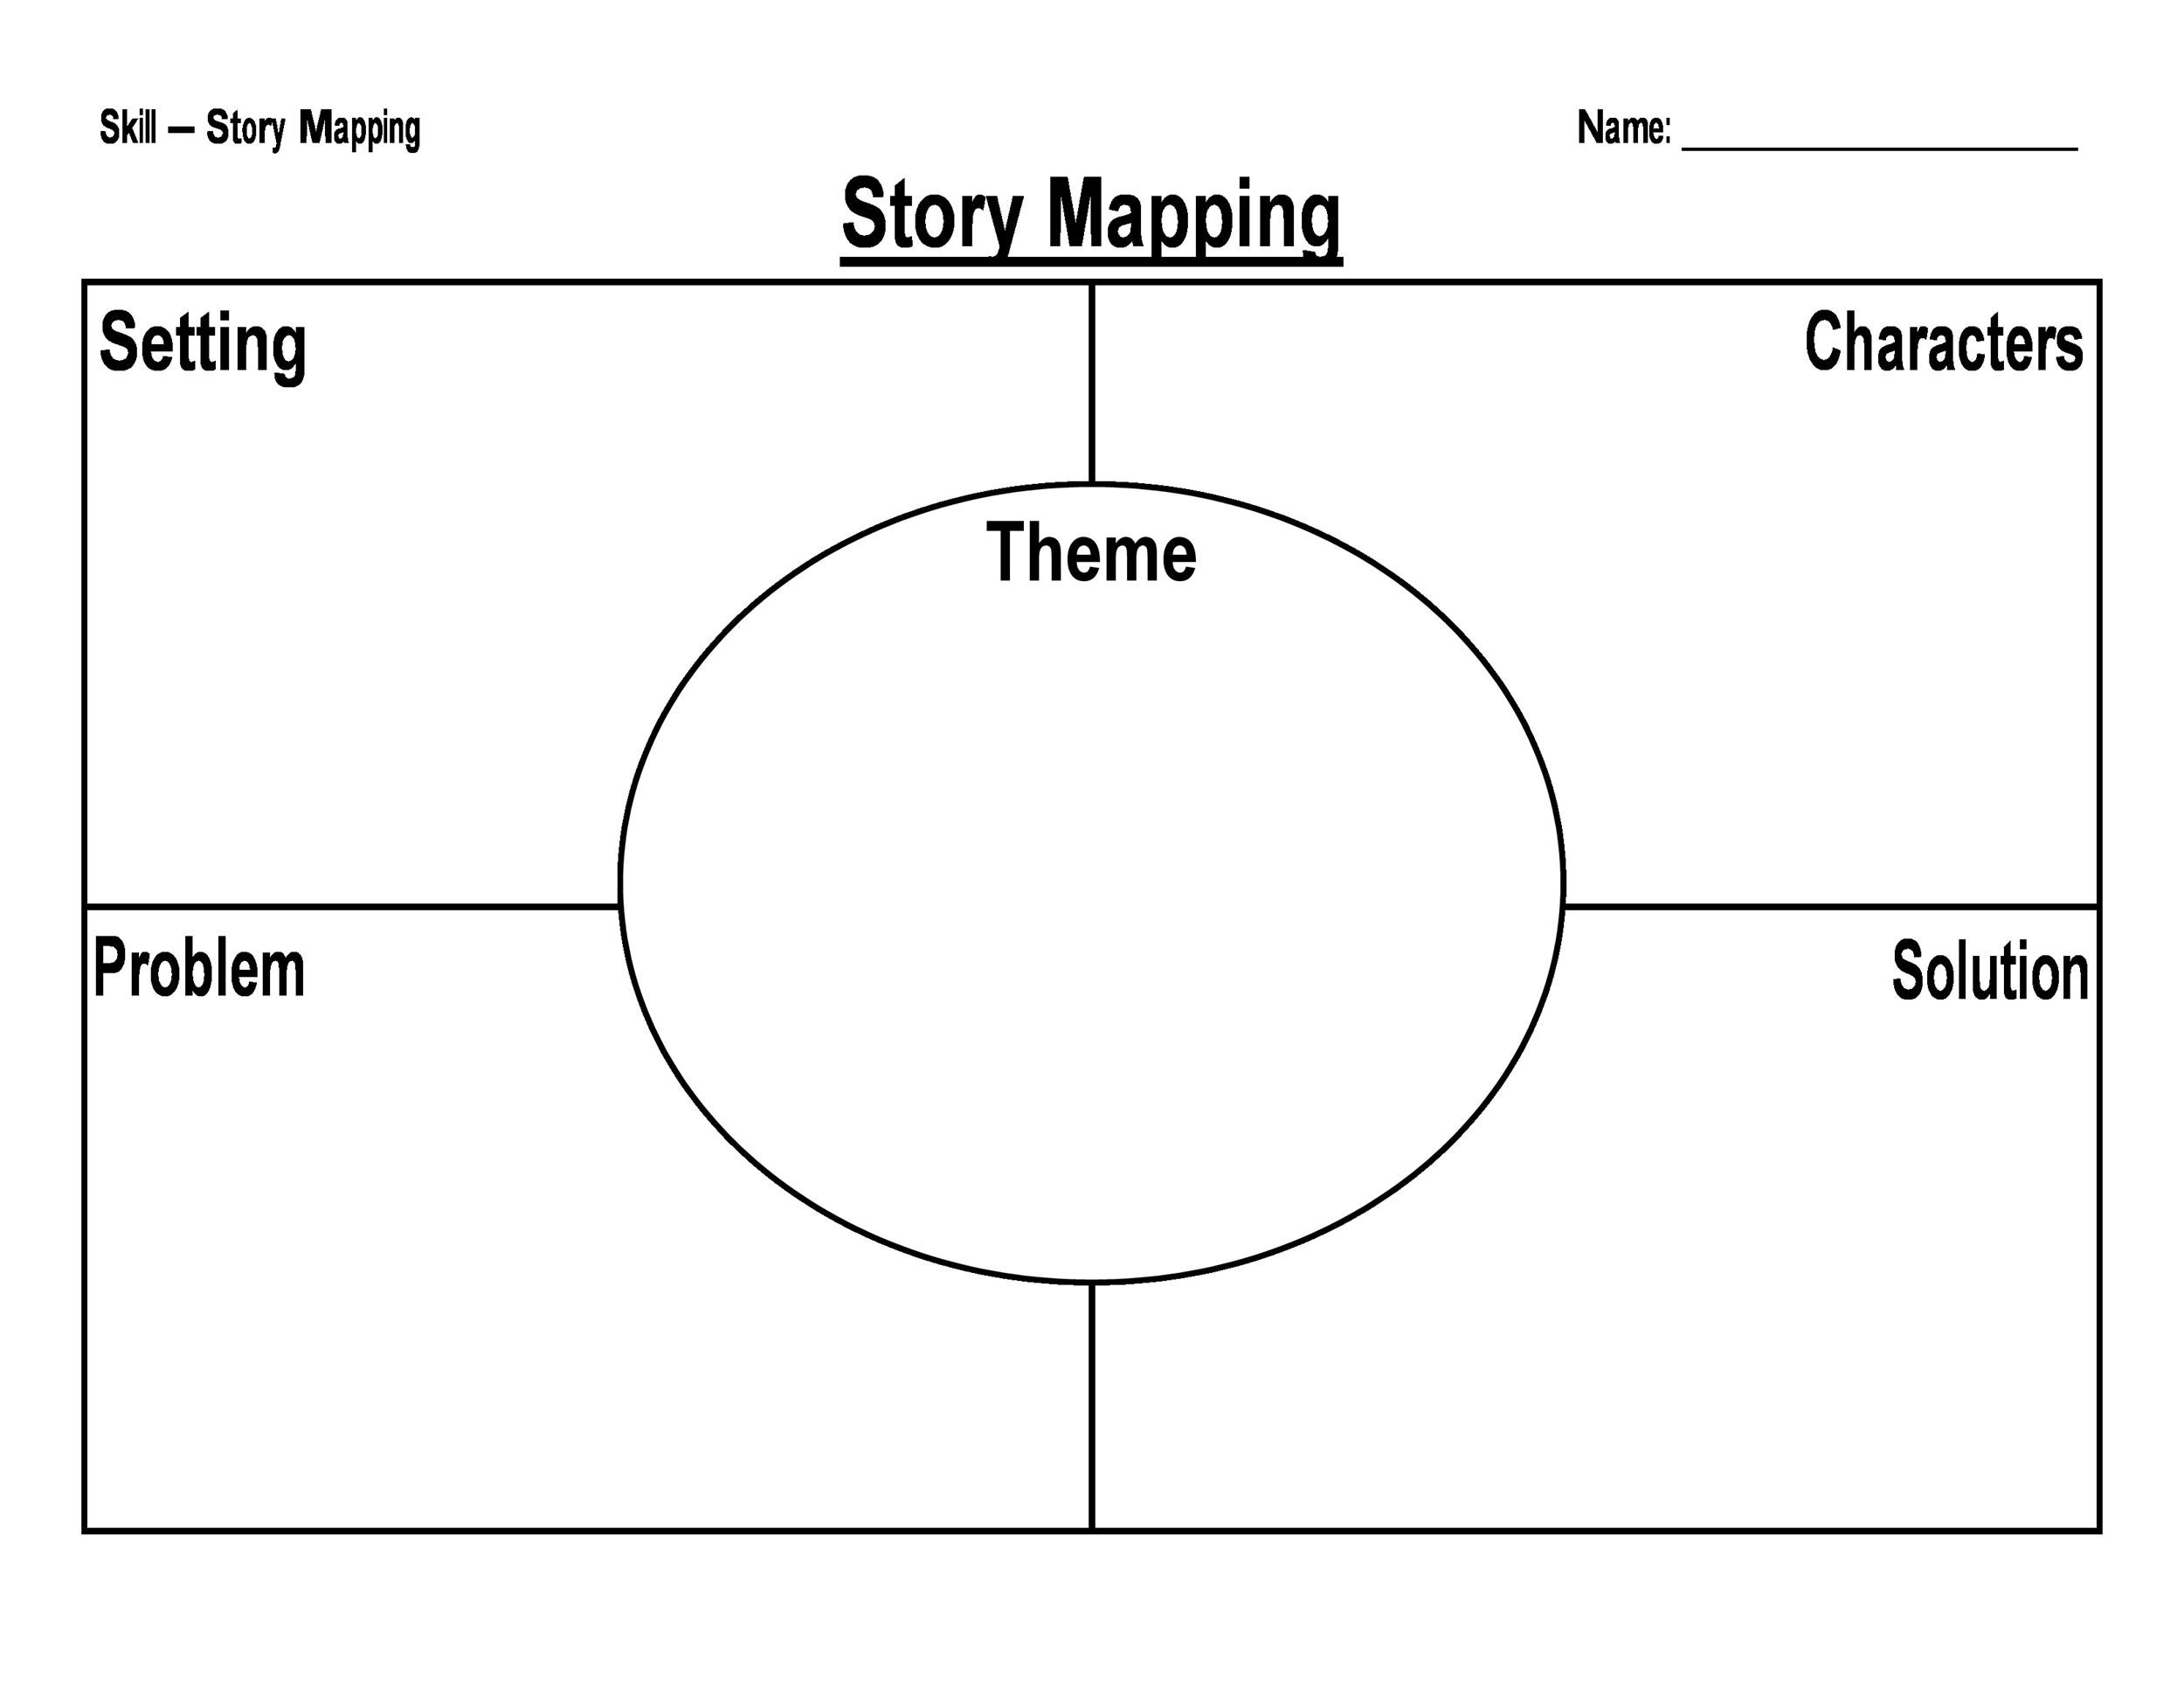 photo relating to Printable Story Maps titled 41 Totally free Printable Tale Map Templates [PDF / Phrase] ᐅ